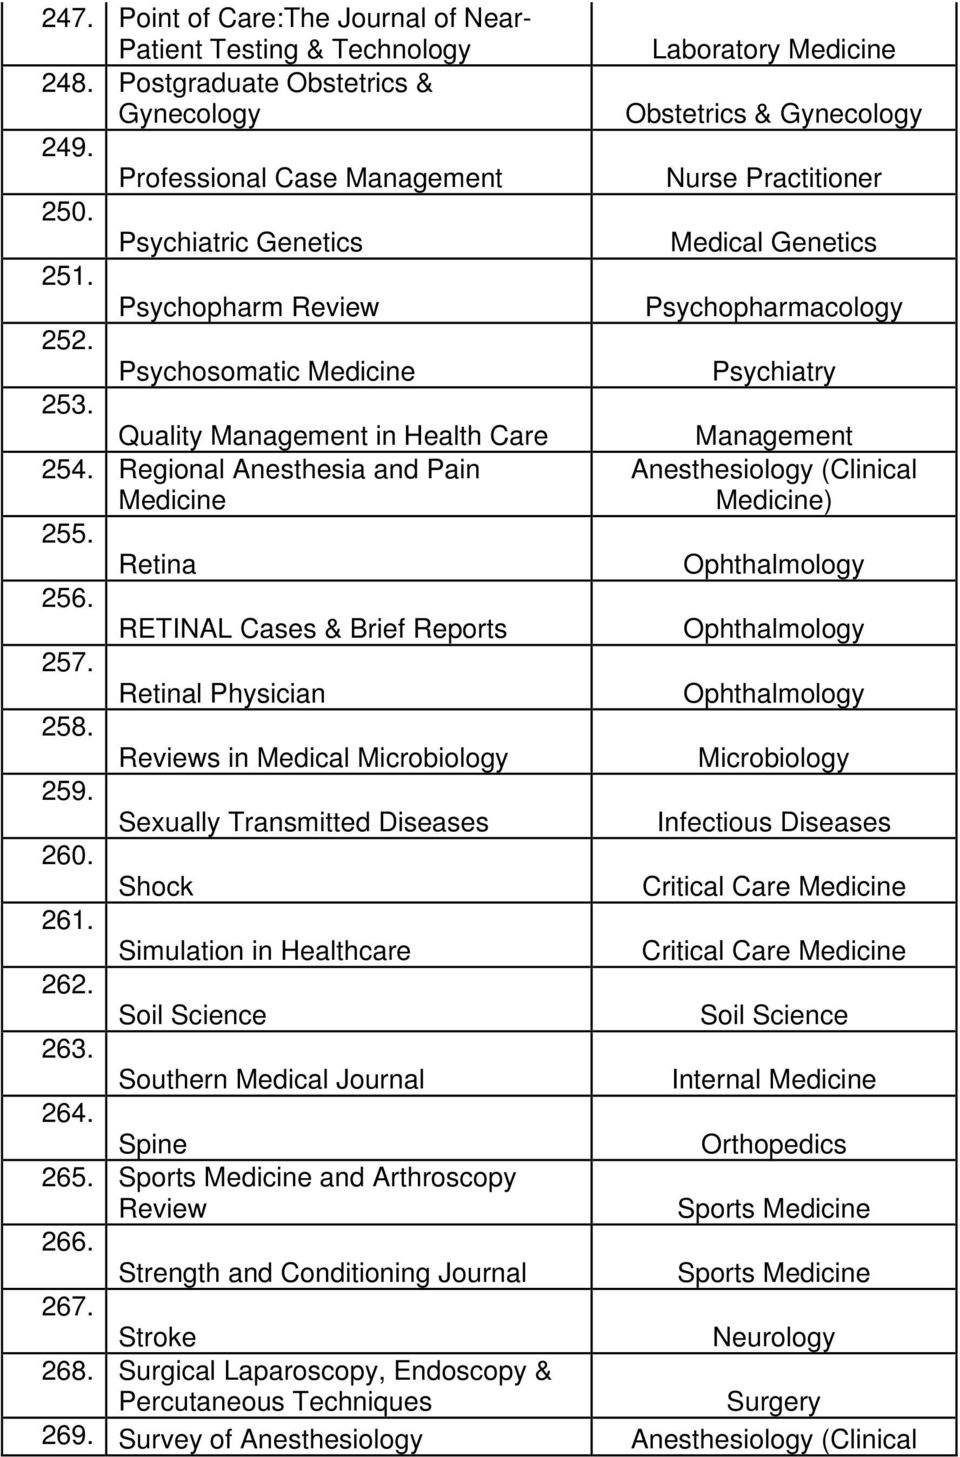 Quality Management in Health Care Management 254. Regional Anesthesia and Pain 255. Retina 256. RETINAL Cases & Brief Reports 257. Retinal Physician 258.